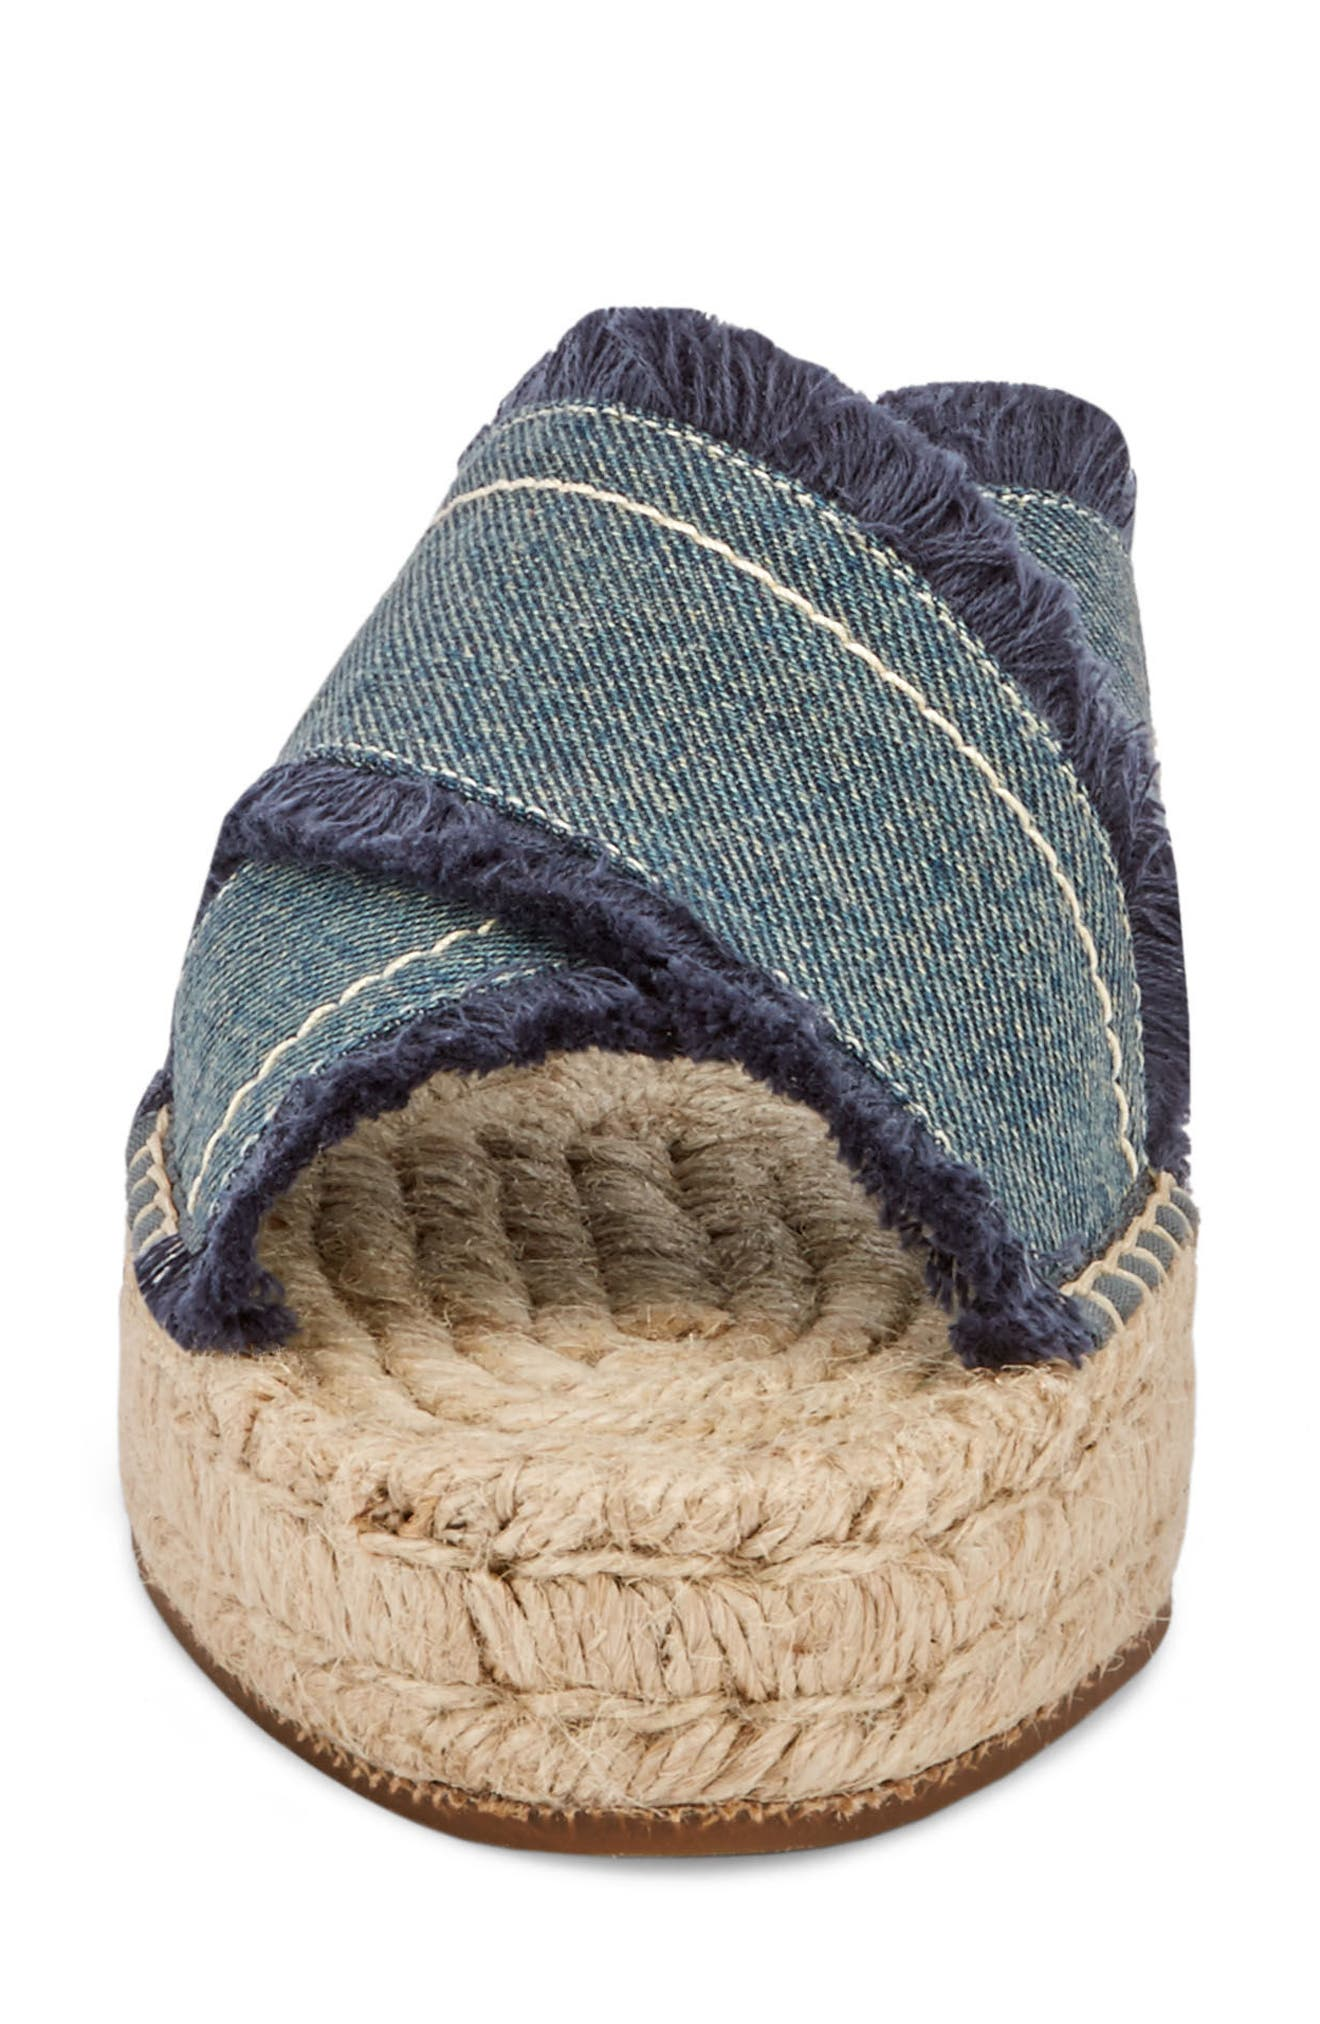 Anabelle Espadrille Sandal,                             Alternate thumbnail 4, color,                             DARK BLUE DENIM FABRIC